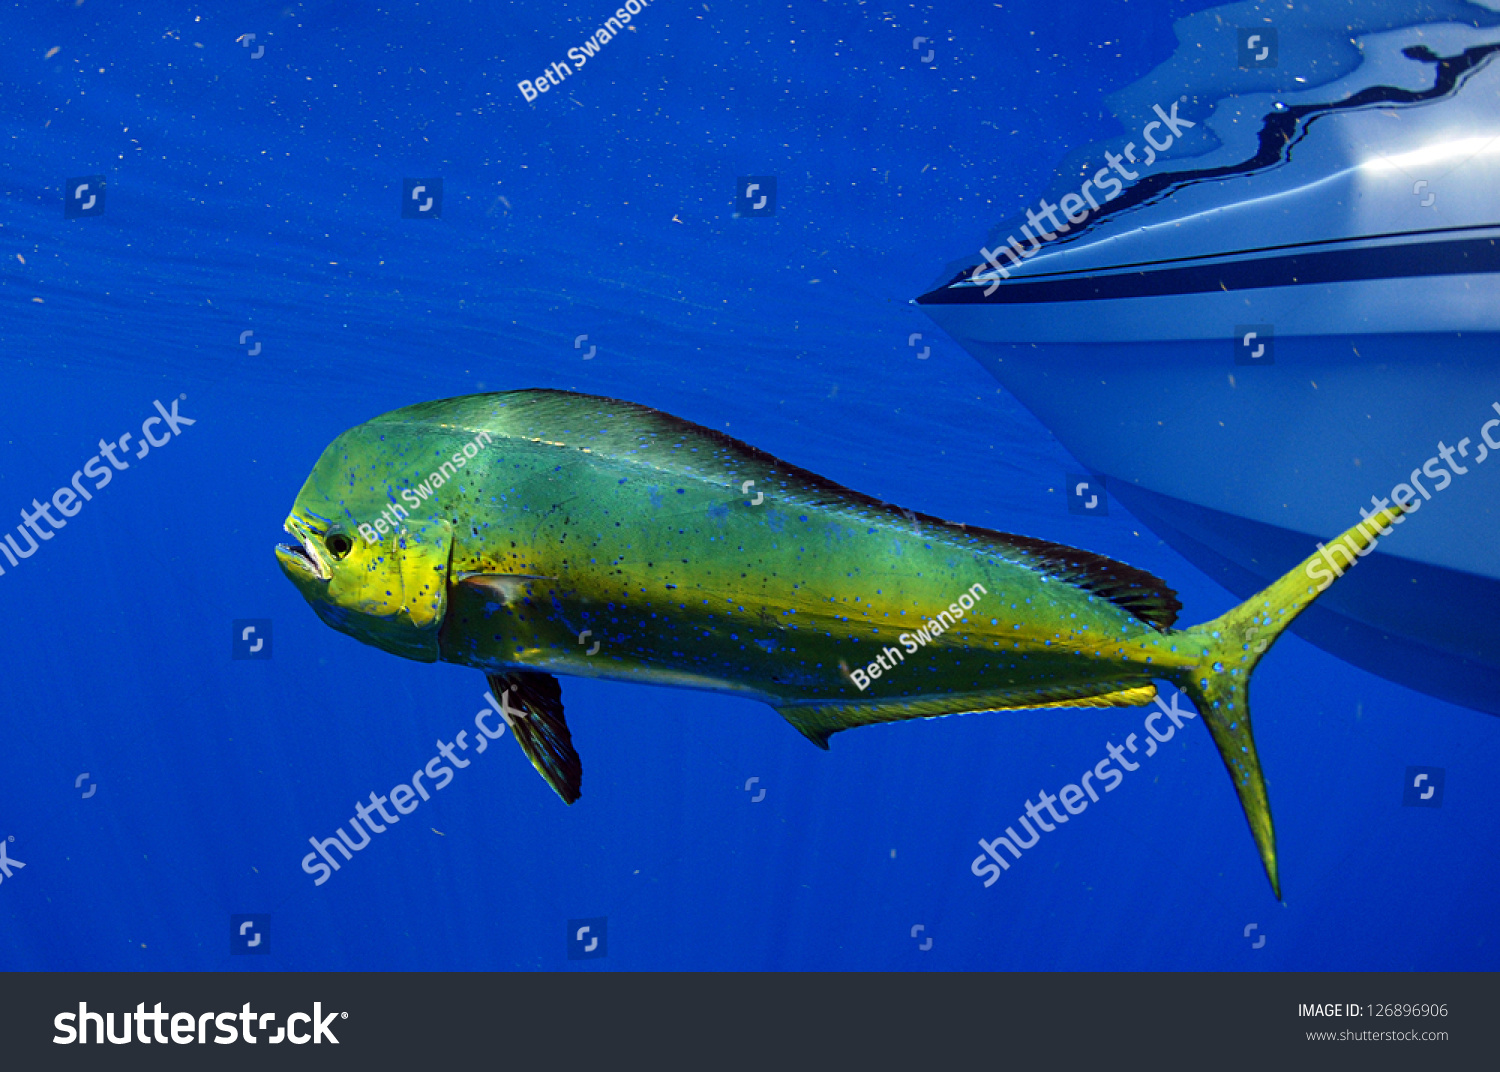 an introduction to the nature of hippurus also known as dolphin fish Mahi-mahi (coryphaena hippurus), also known as dolphinfish, have been identified as one of the most promising candidate species for development of warm-water marine finfish aquaculture due to their high growth rate, market presence, and global distribution in addition, mahi-mahi have proven to be a useful model species for physiology and.